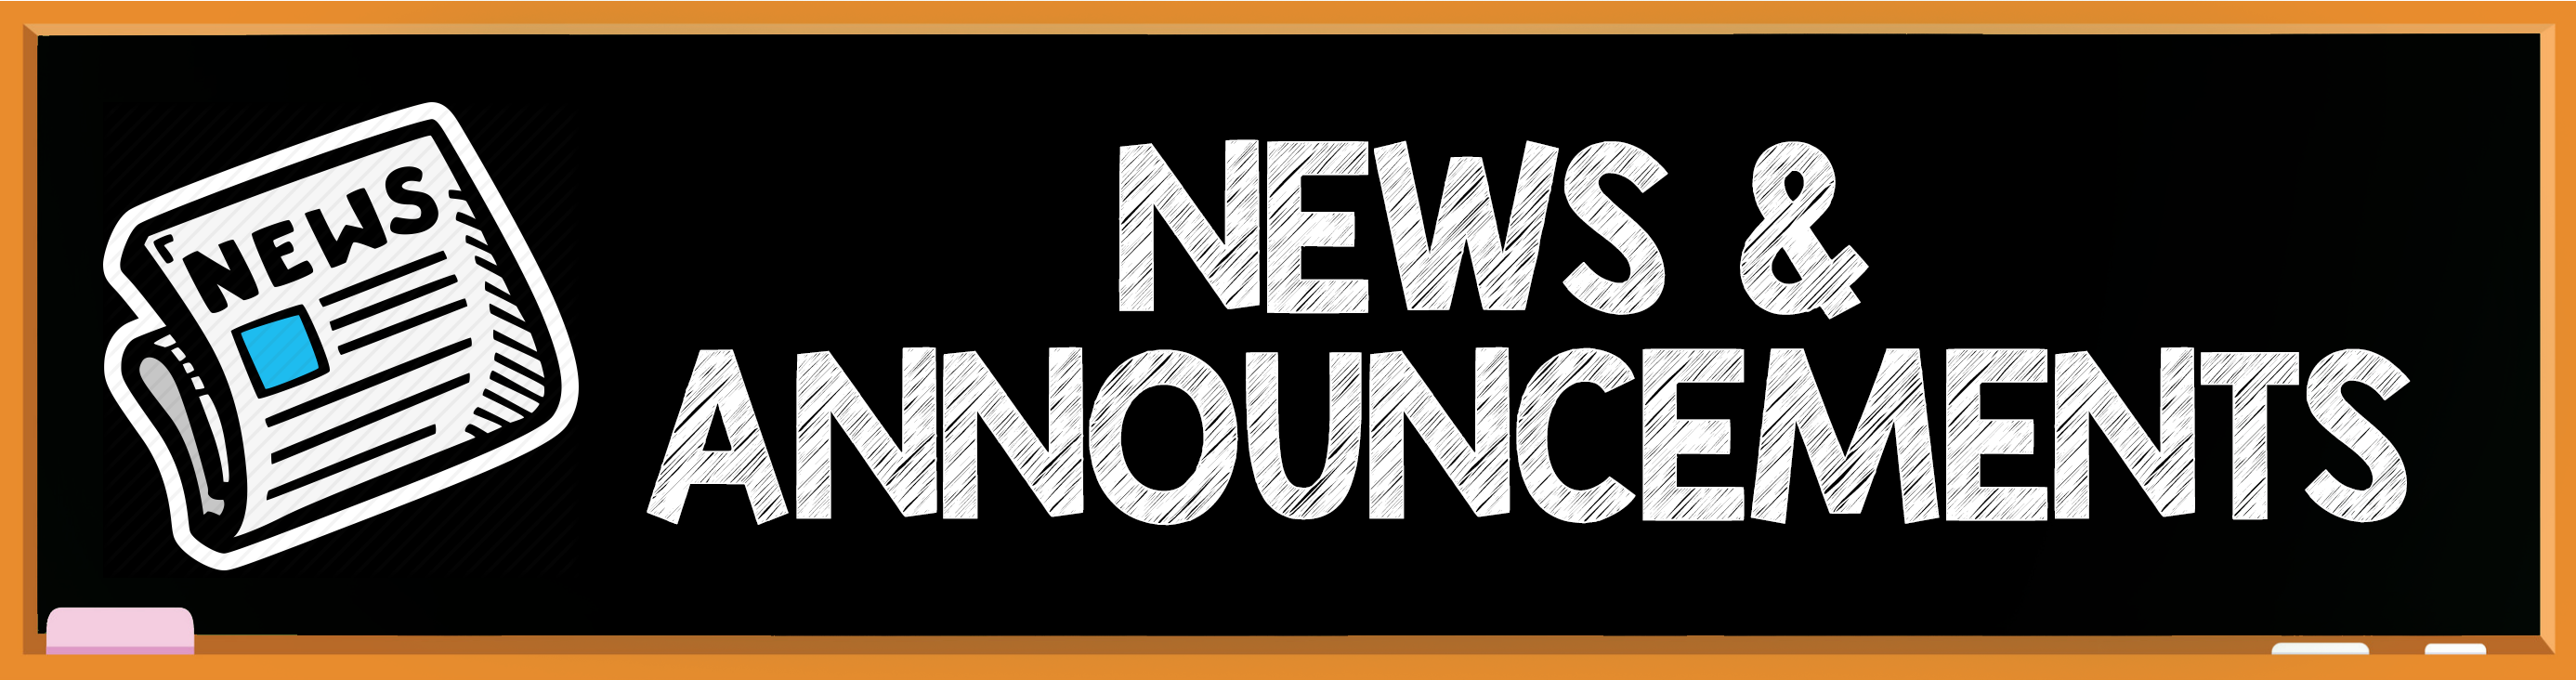 News & Announcements header